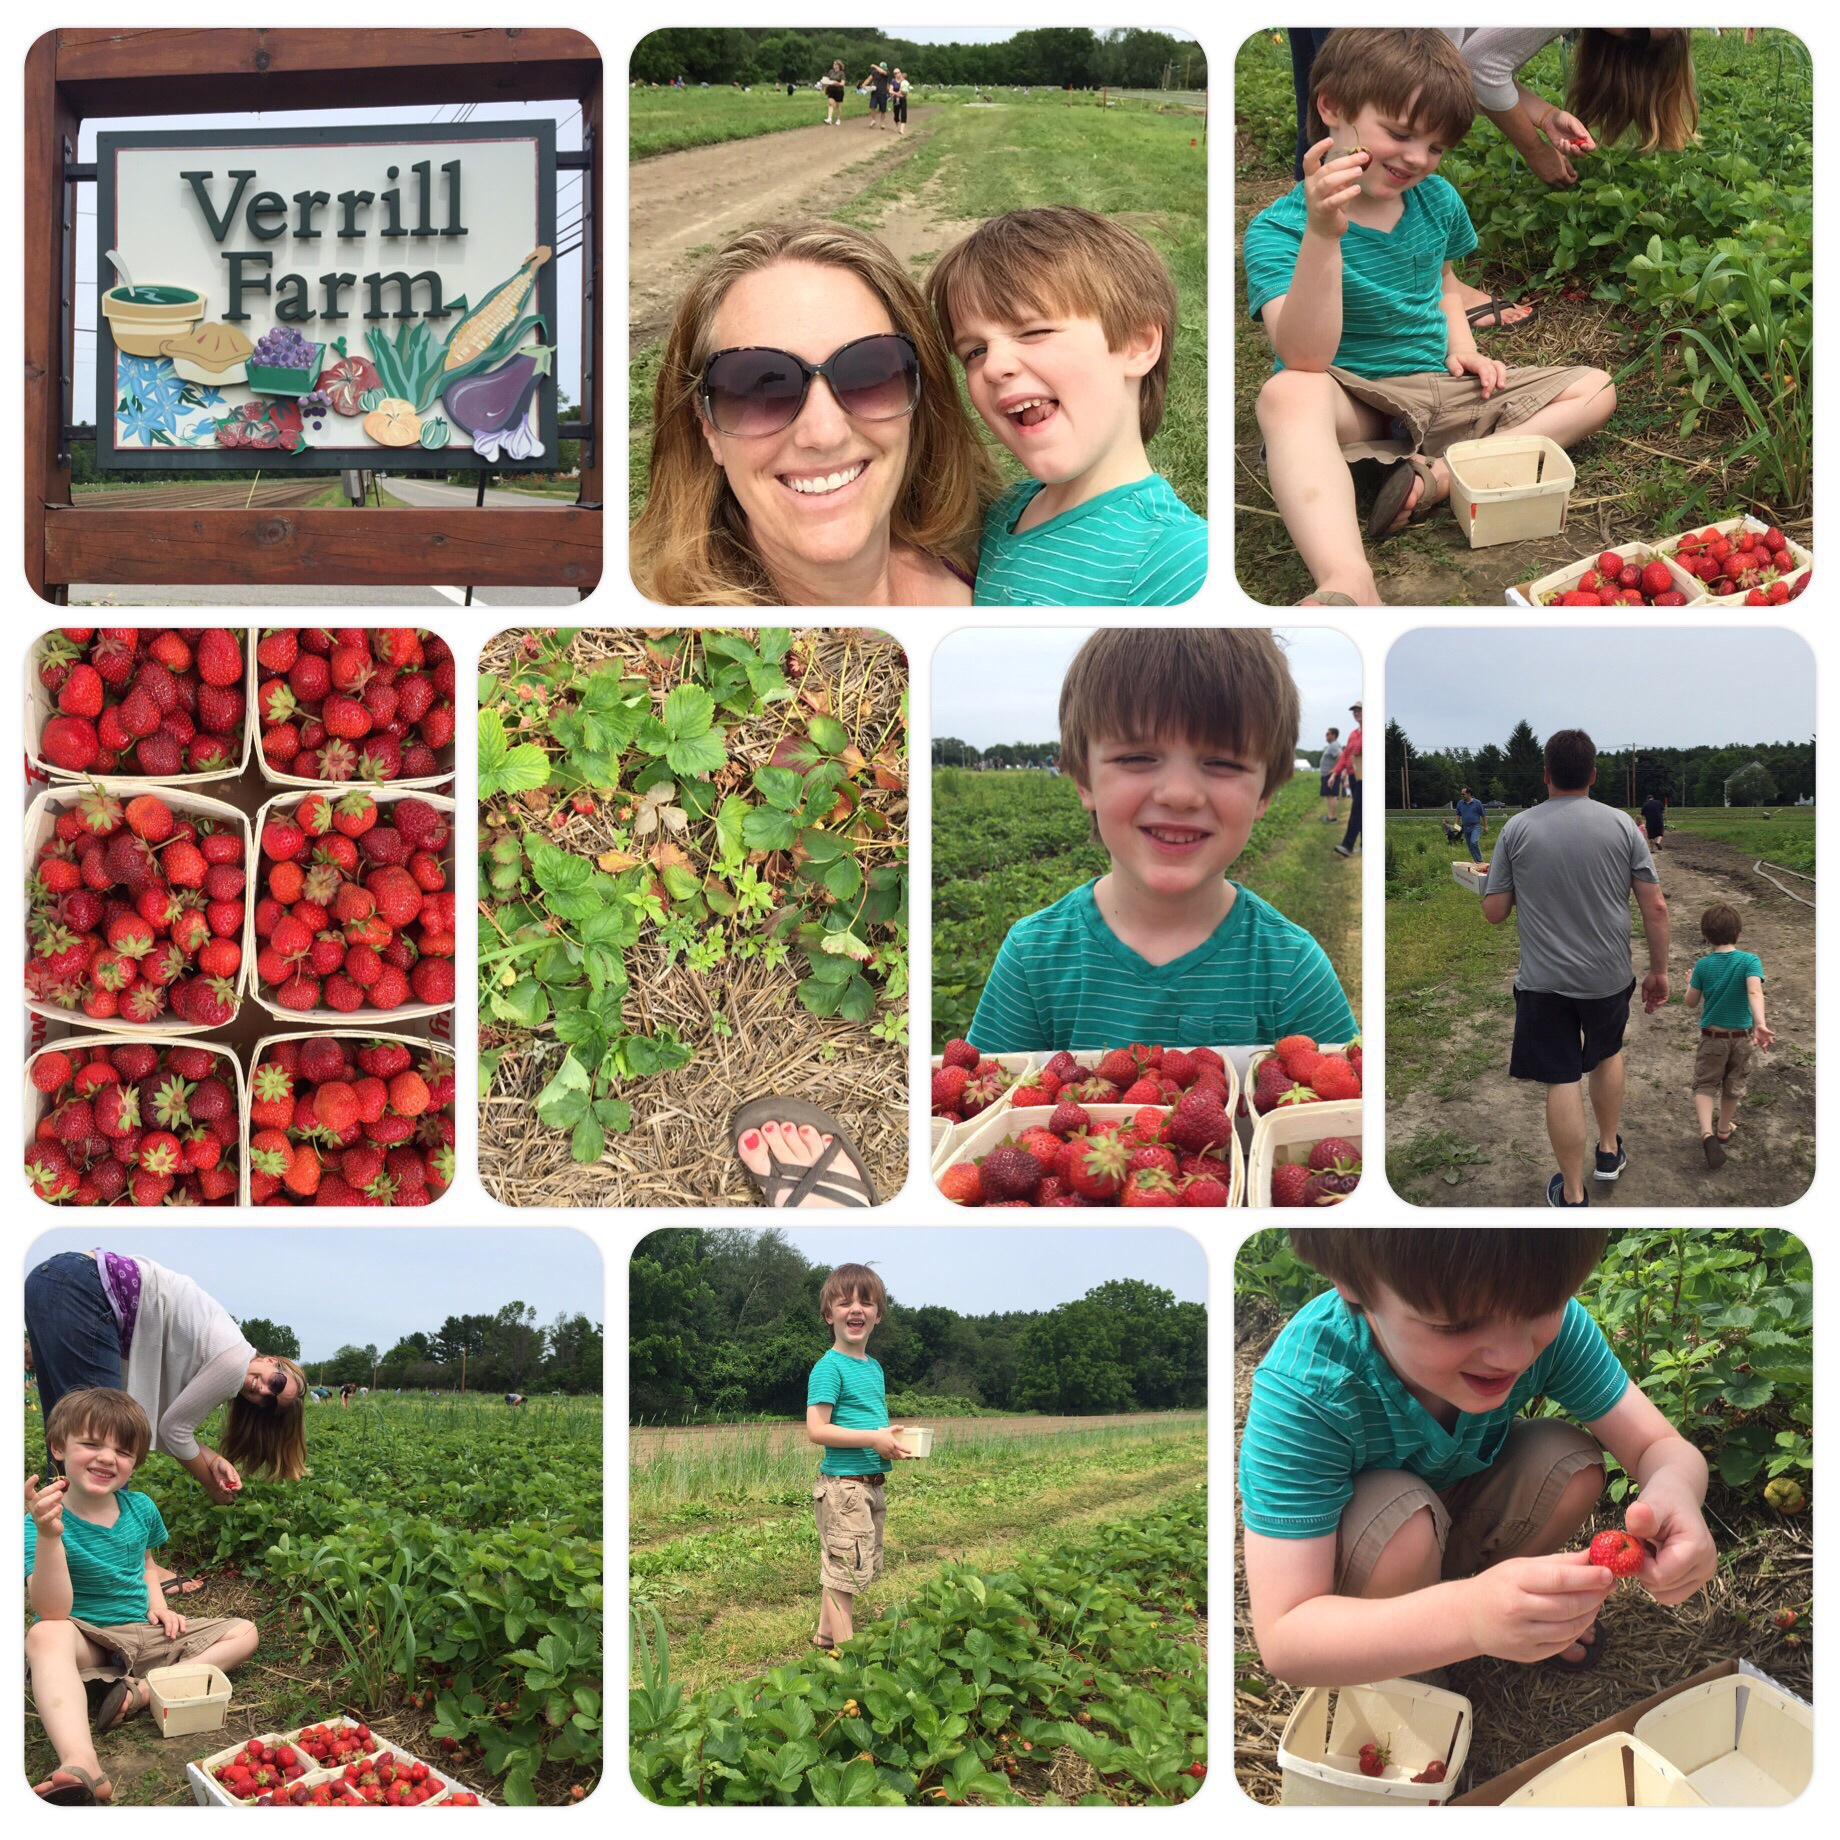 Strawberry picking at Verrill Farm in Concord, MA.